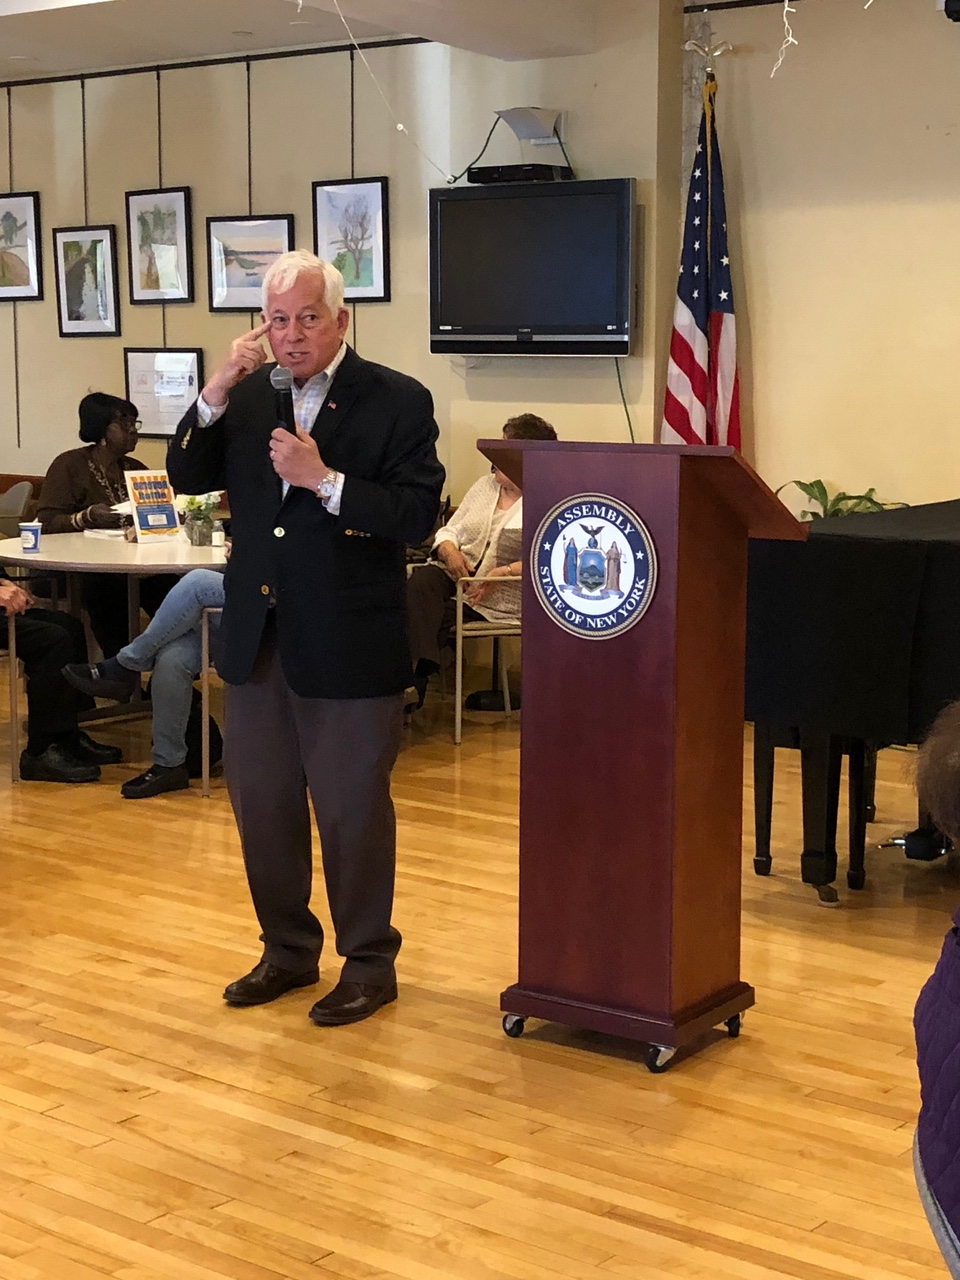 Chuck speaks at his Senior Scam event in OB